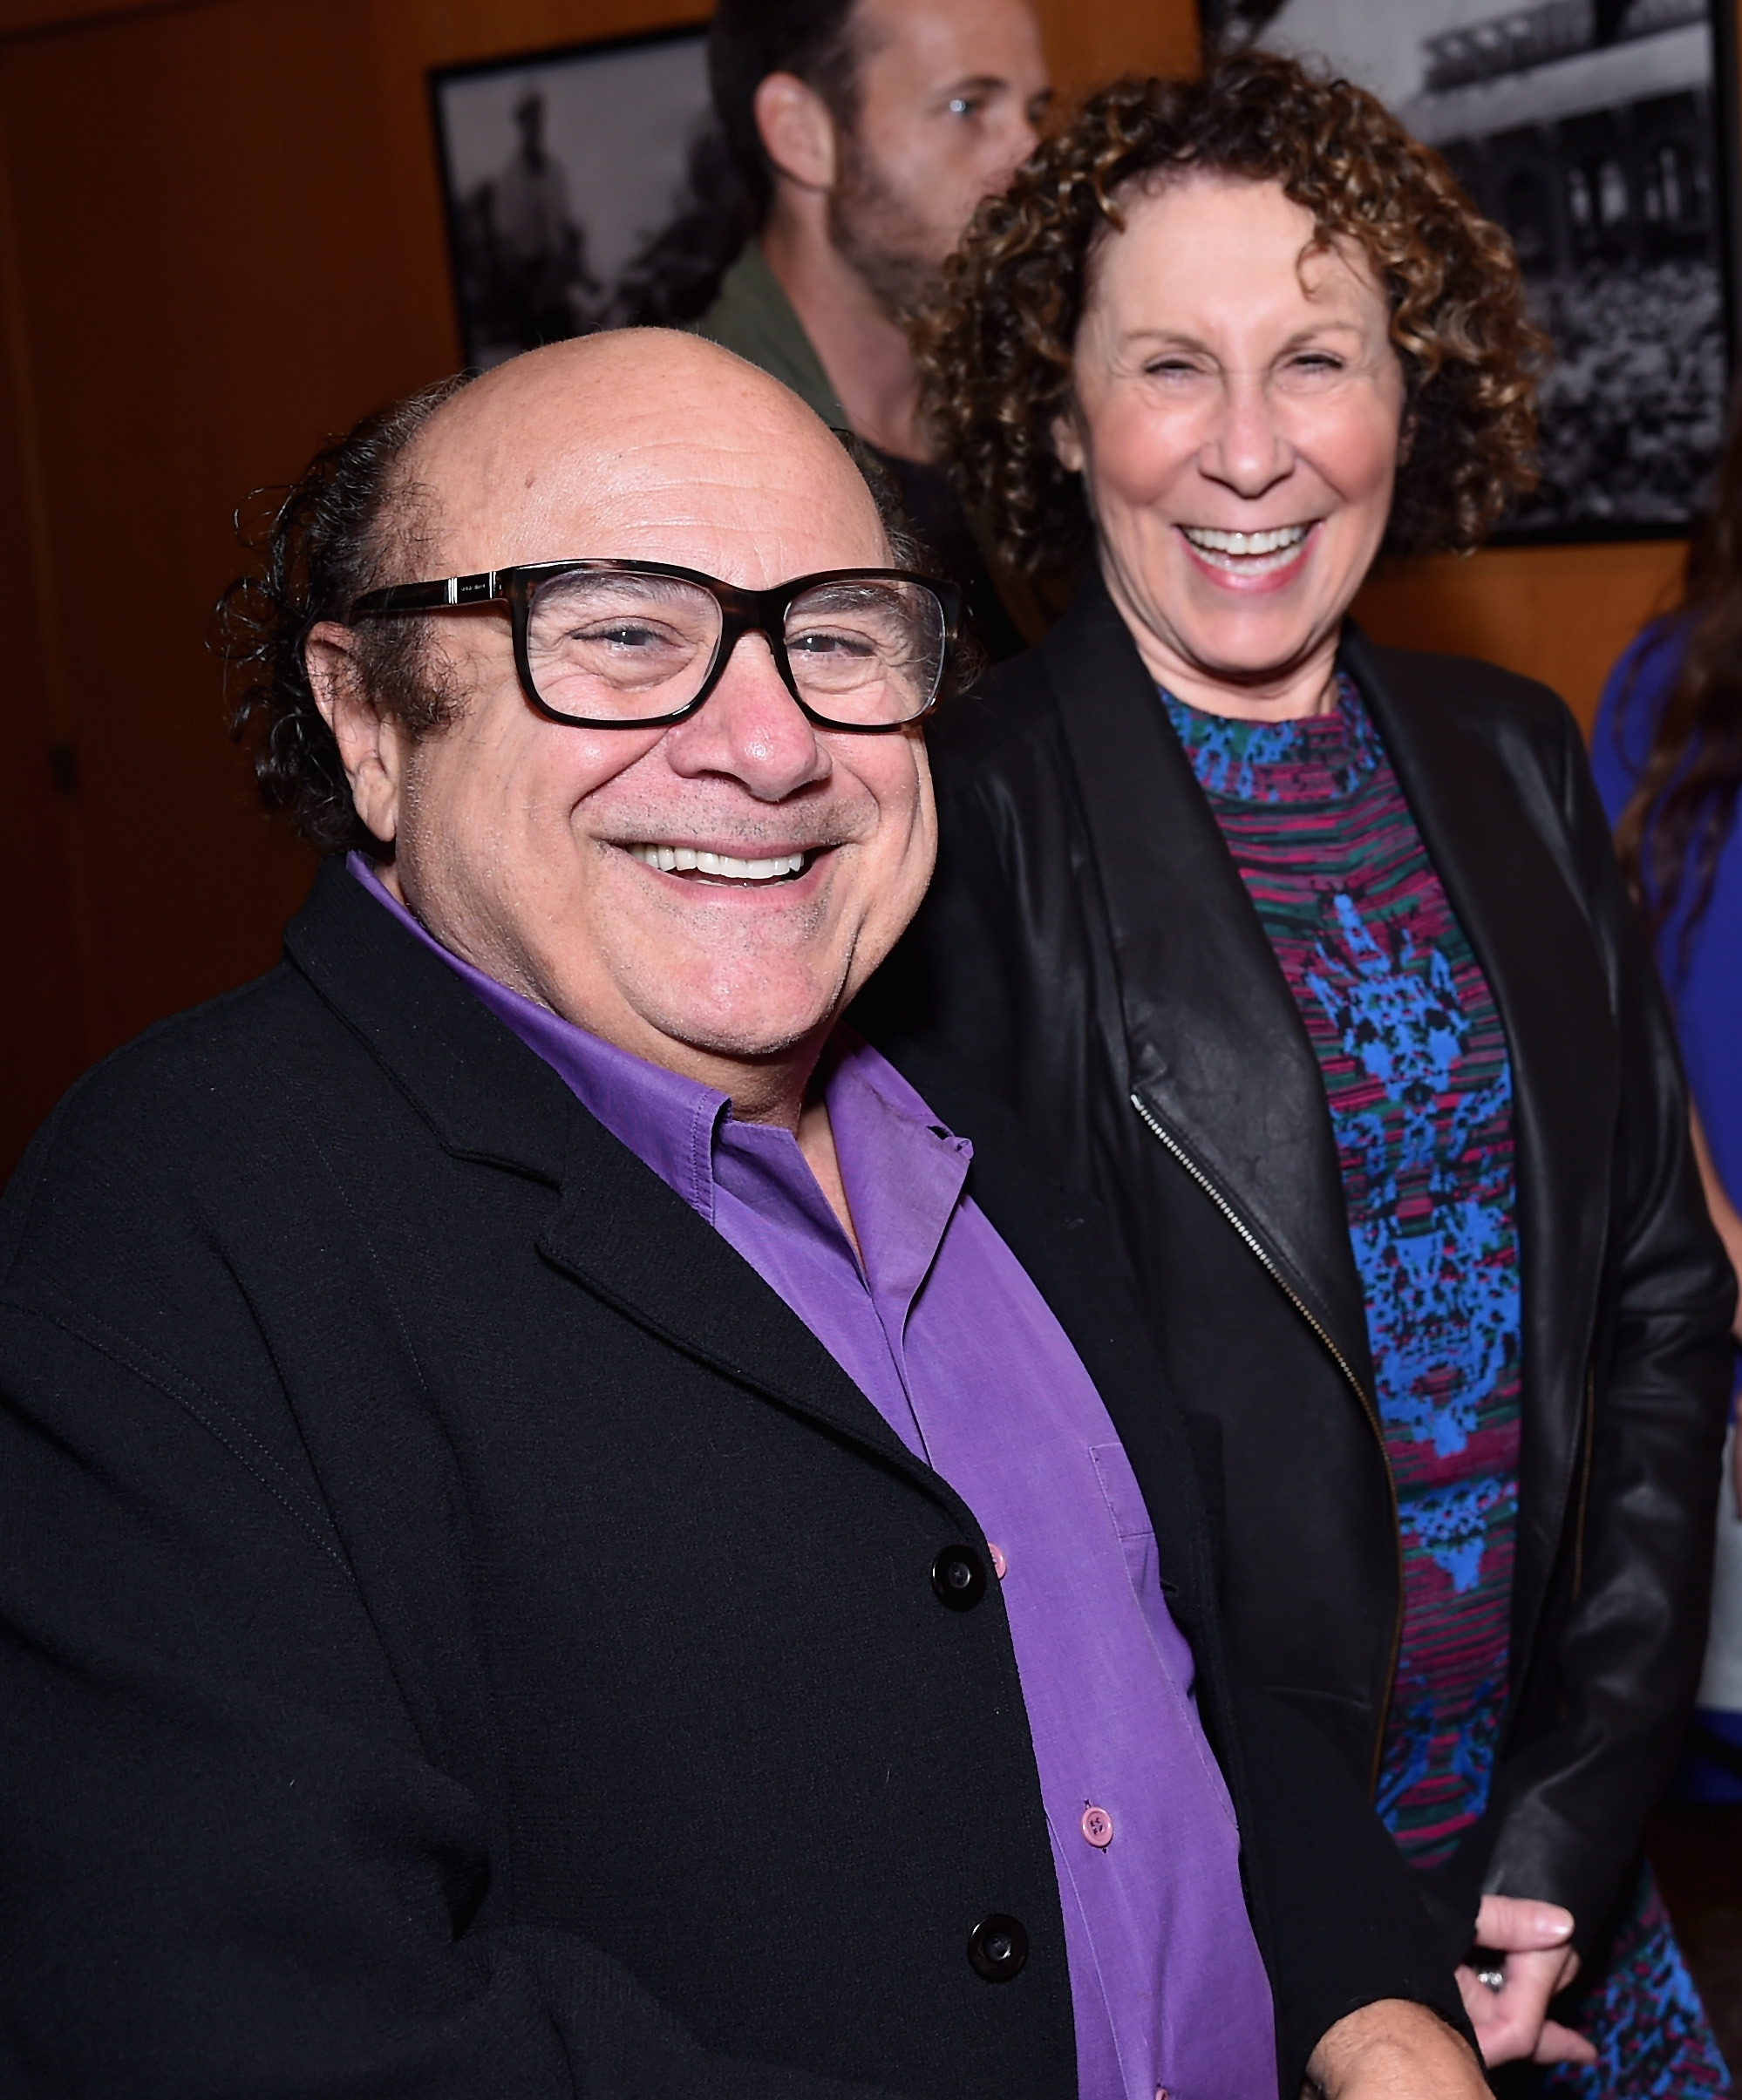 """Date night: Actors Danny DeVito and Rhea Perlman attend the premiere of Amplify's """"The Better Angels"""" Monday at DGA Theater in Los Angeles."""